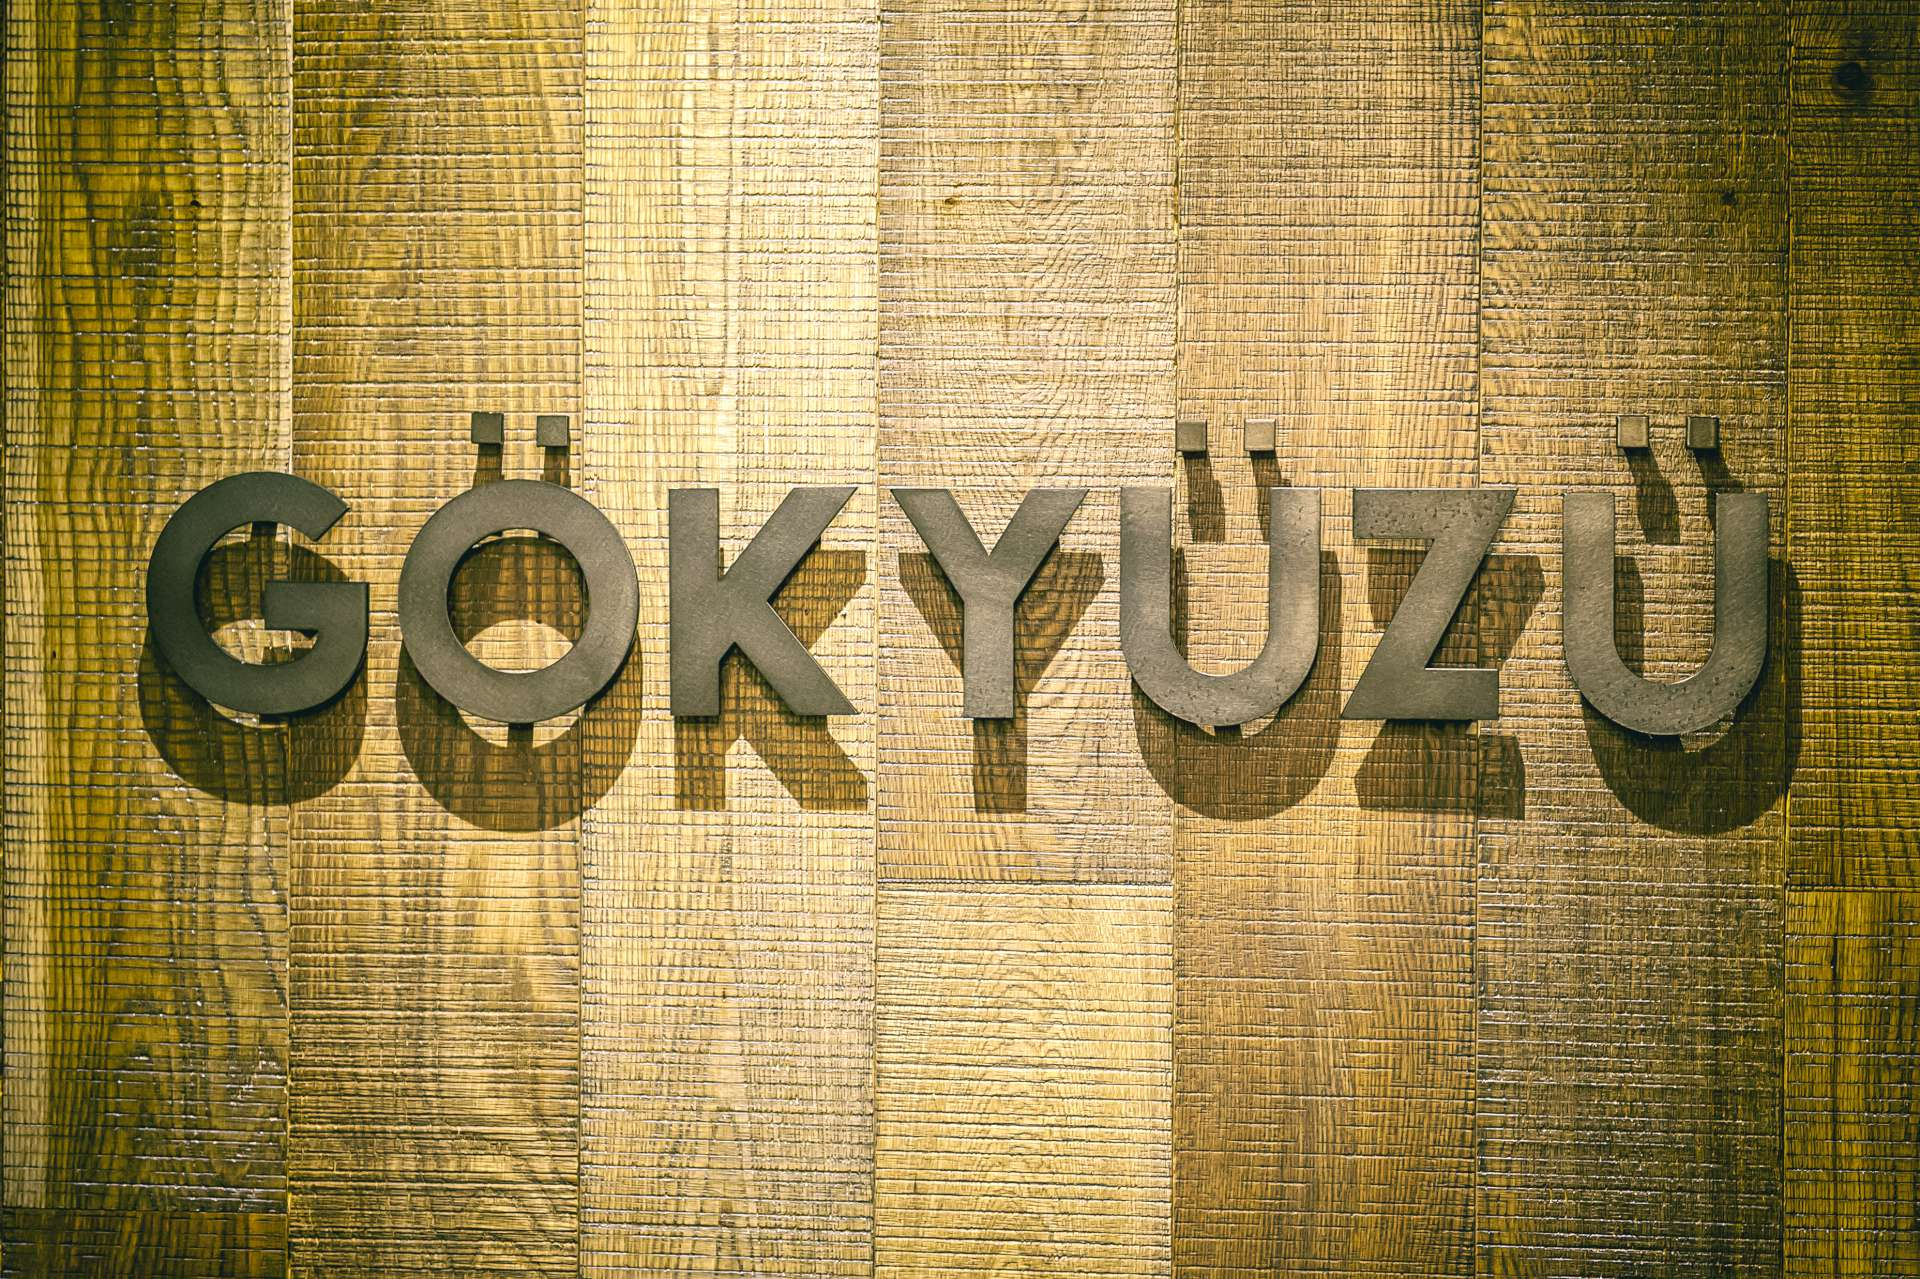 Gokyuzu Restaurant Green Lanes Harringay (10)